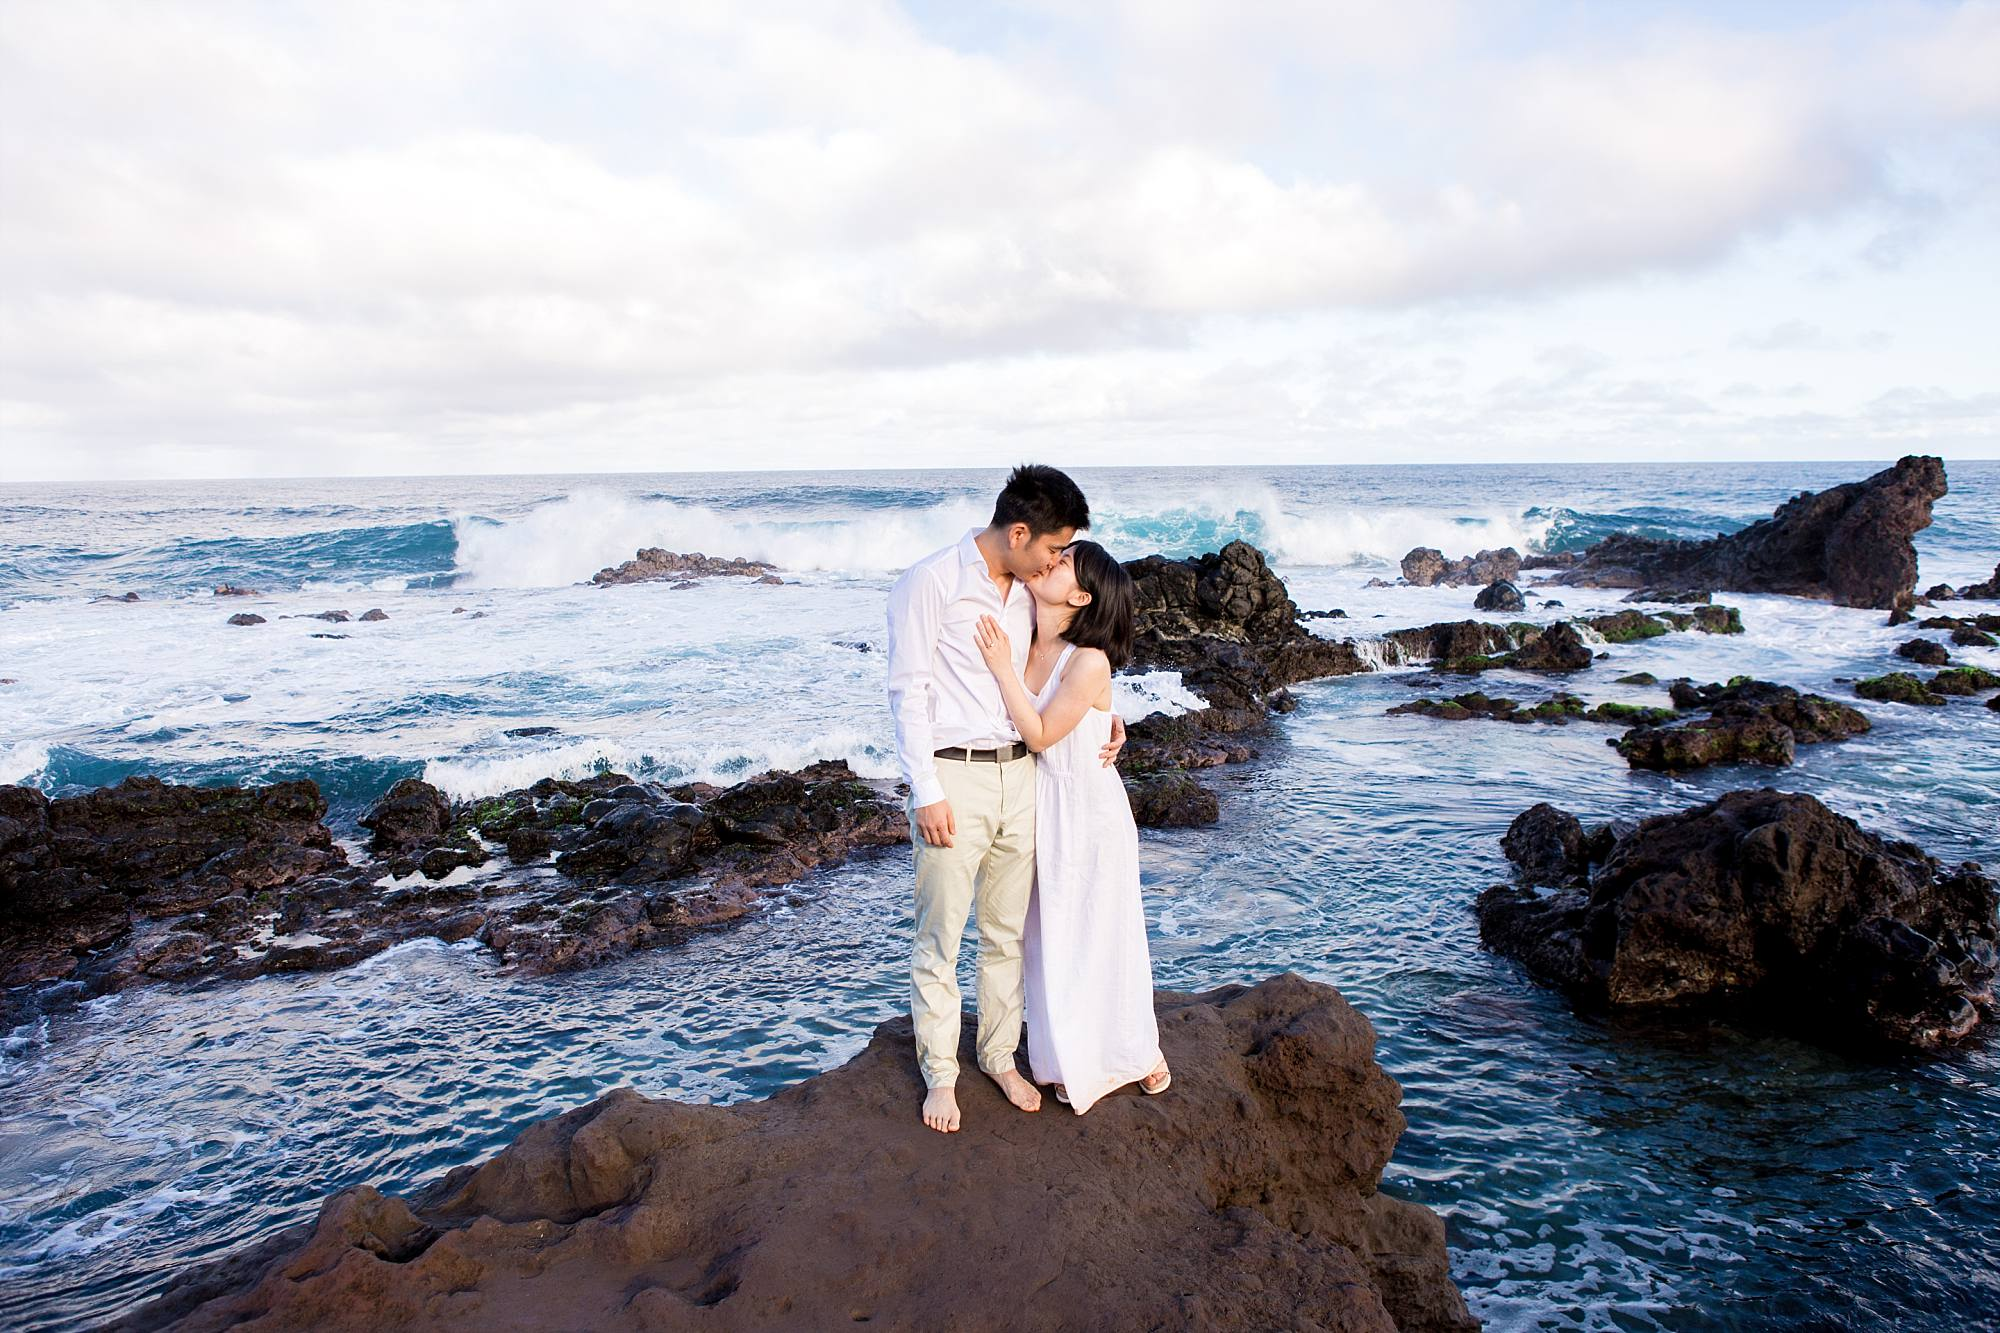 couple kissing on the rocks surrounded by the ocean